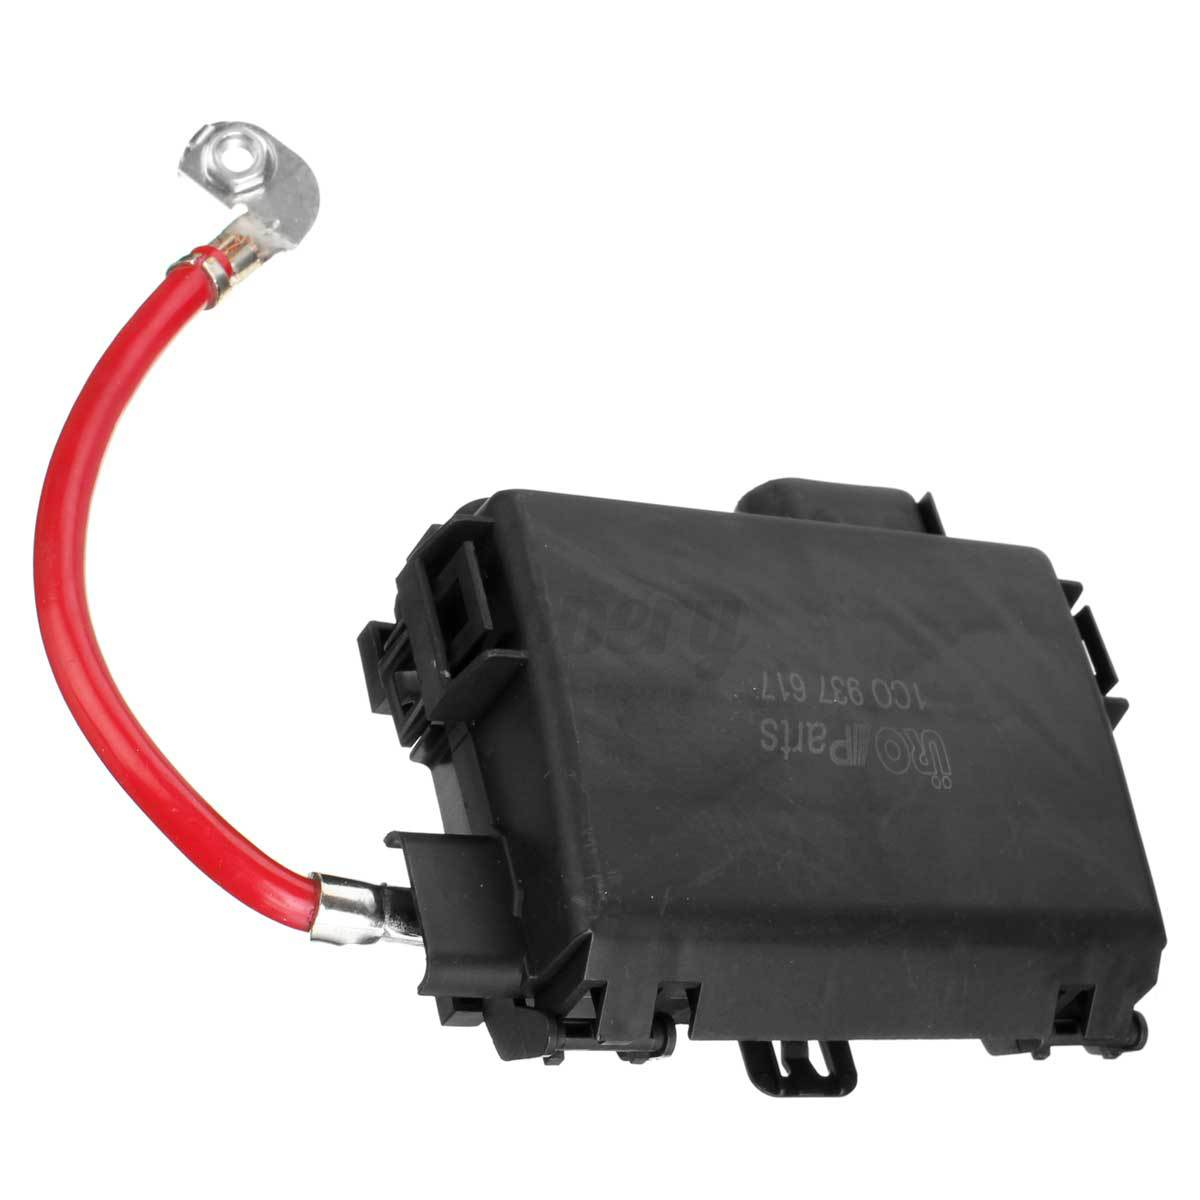 Fuse Box Skoda Octavia 2000 Illustration Of Wiring Diagram Fabia 2002 Holder Fuses For Vw Beetle Bora Golf Jetta 2 0 1 9tdi 1j0937617d Oe Ebay Masini 2007